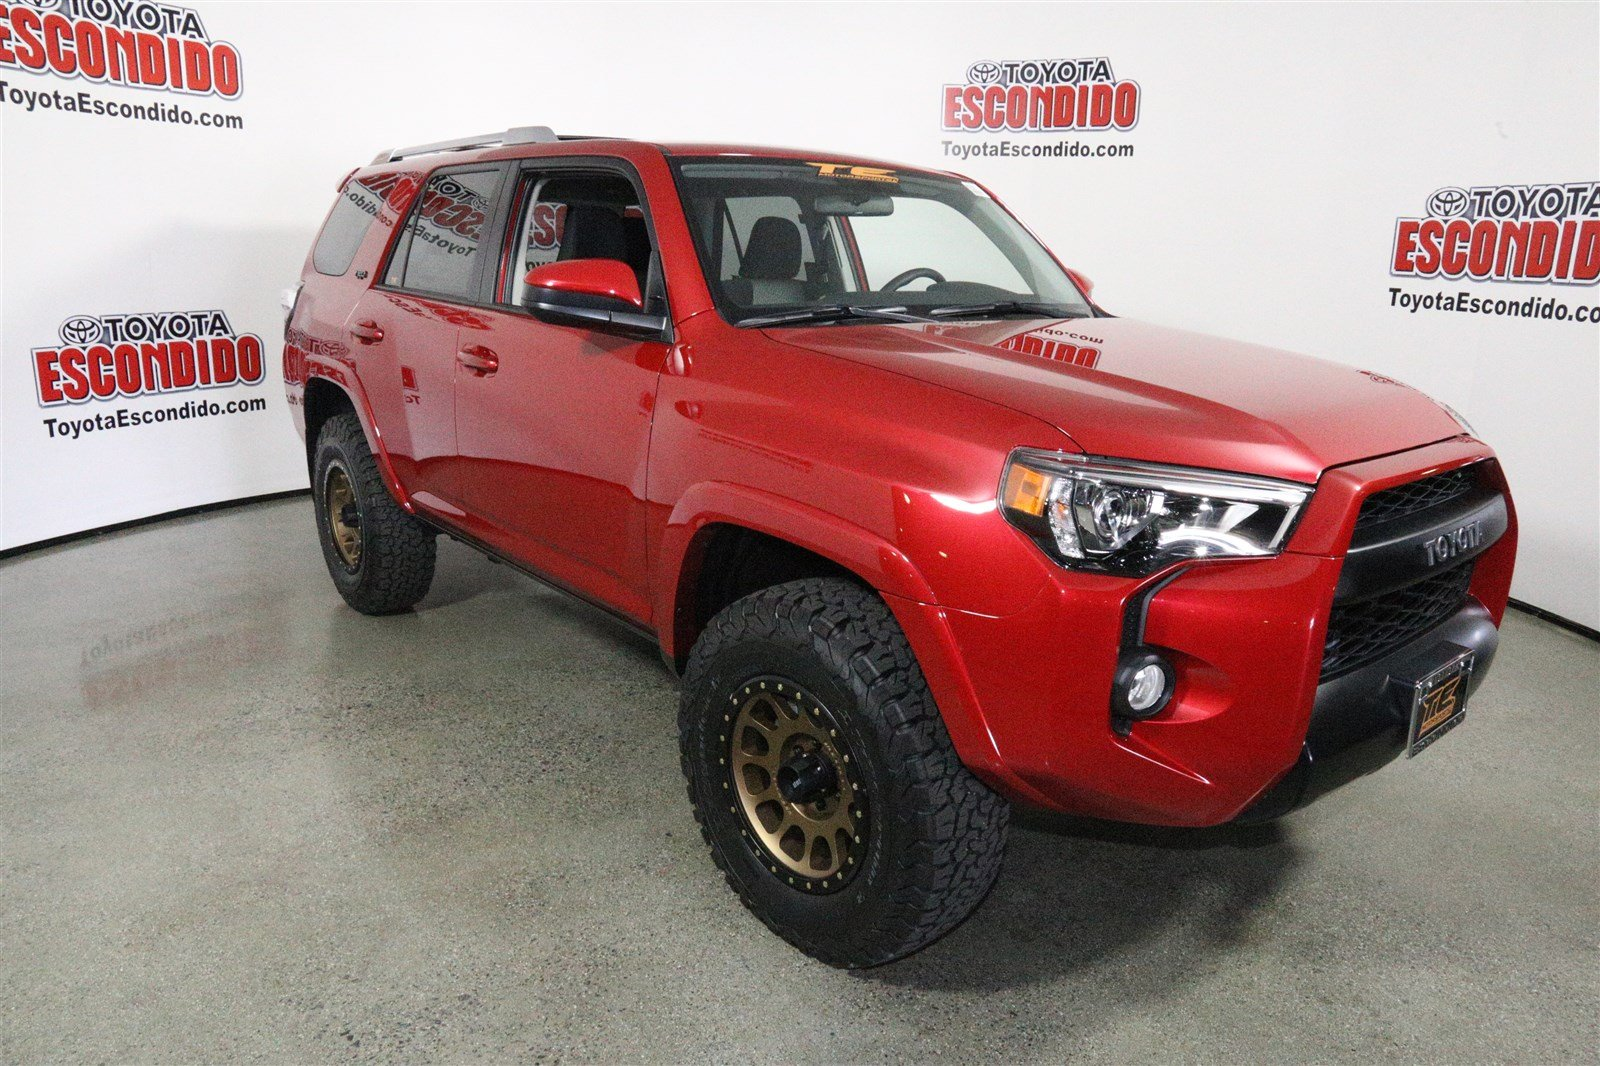 new 2017 toyota 4runner sr5 sport utility in escondido h5150271 toyota escondido. Black Bedroom Furniture Sets. Home Design Ideas